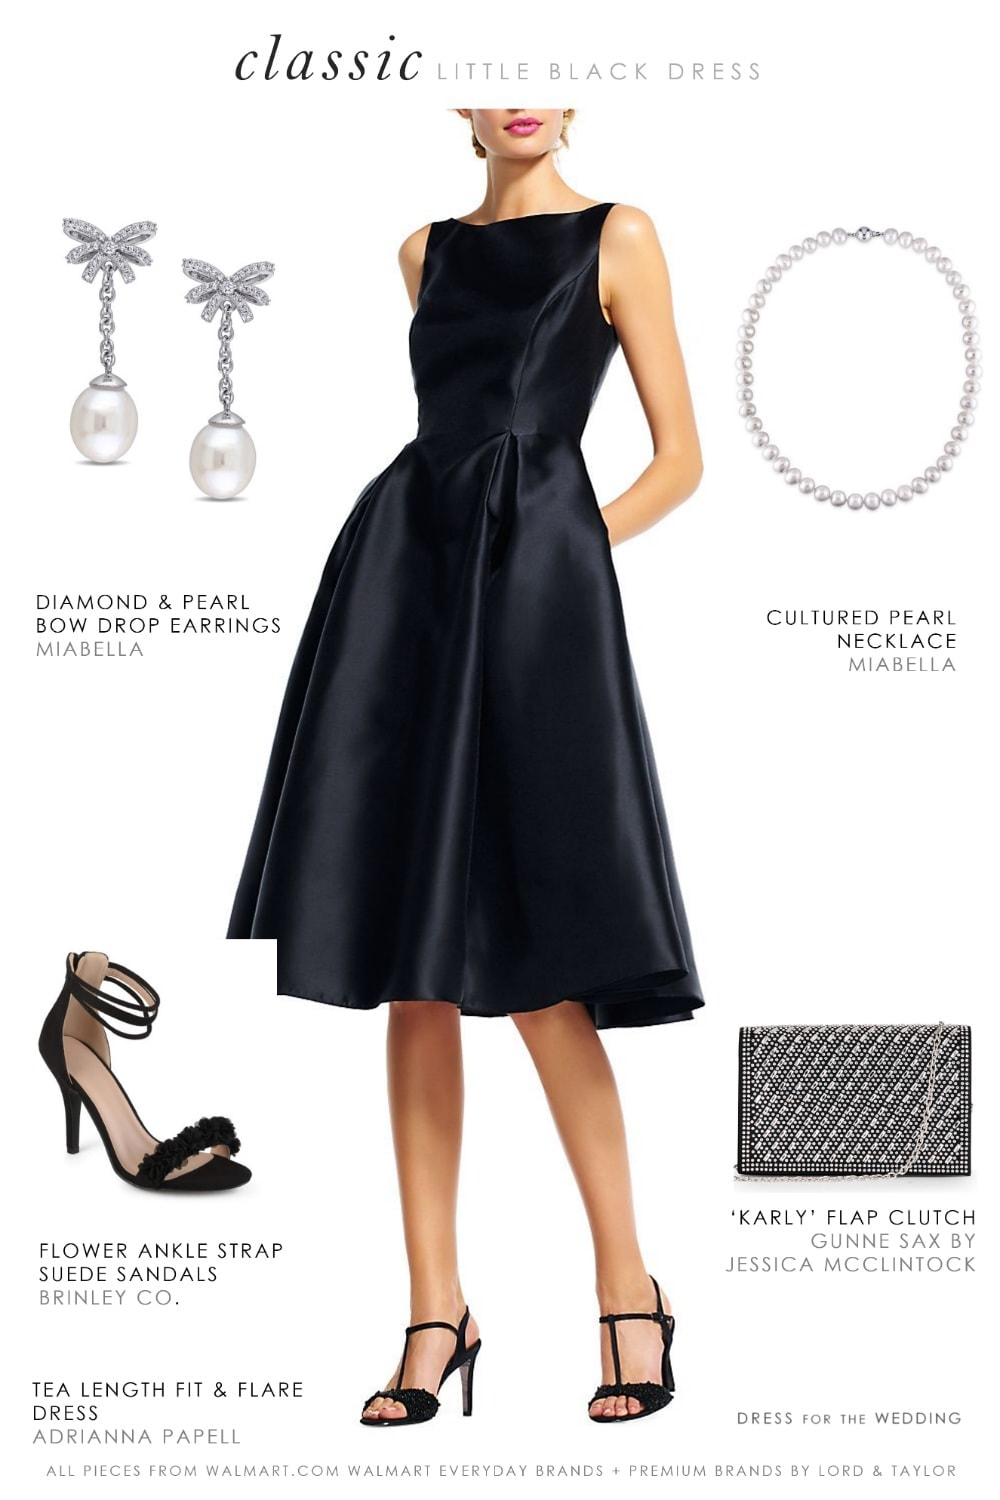 Winter Wedding Guest Outfits From Walmart Dress For The Wedding